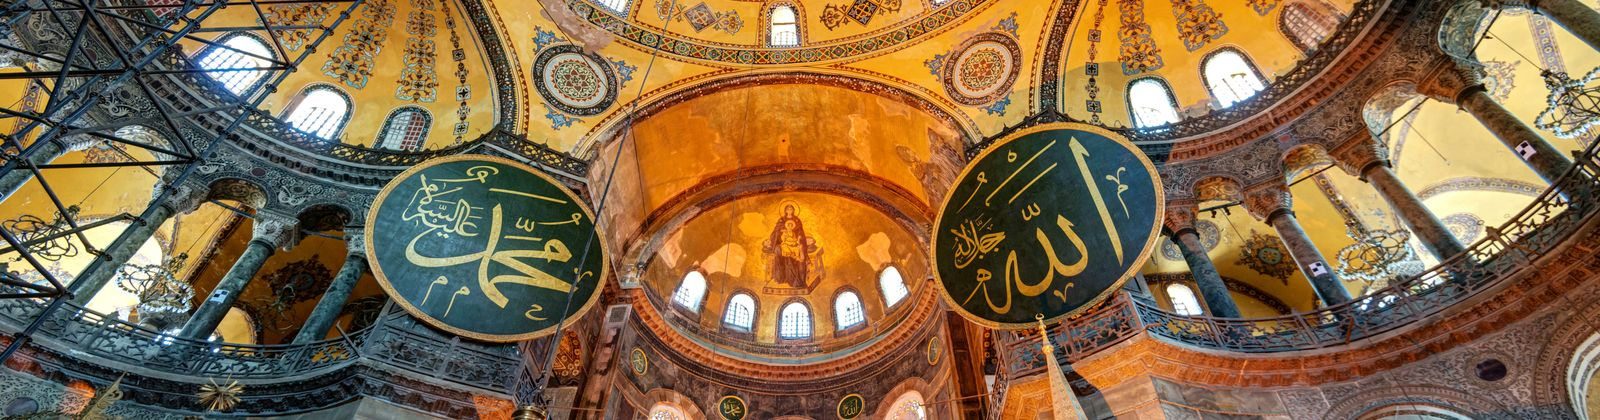 10 best things to do in Istanbul